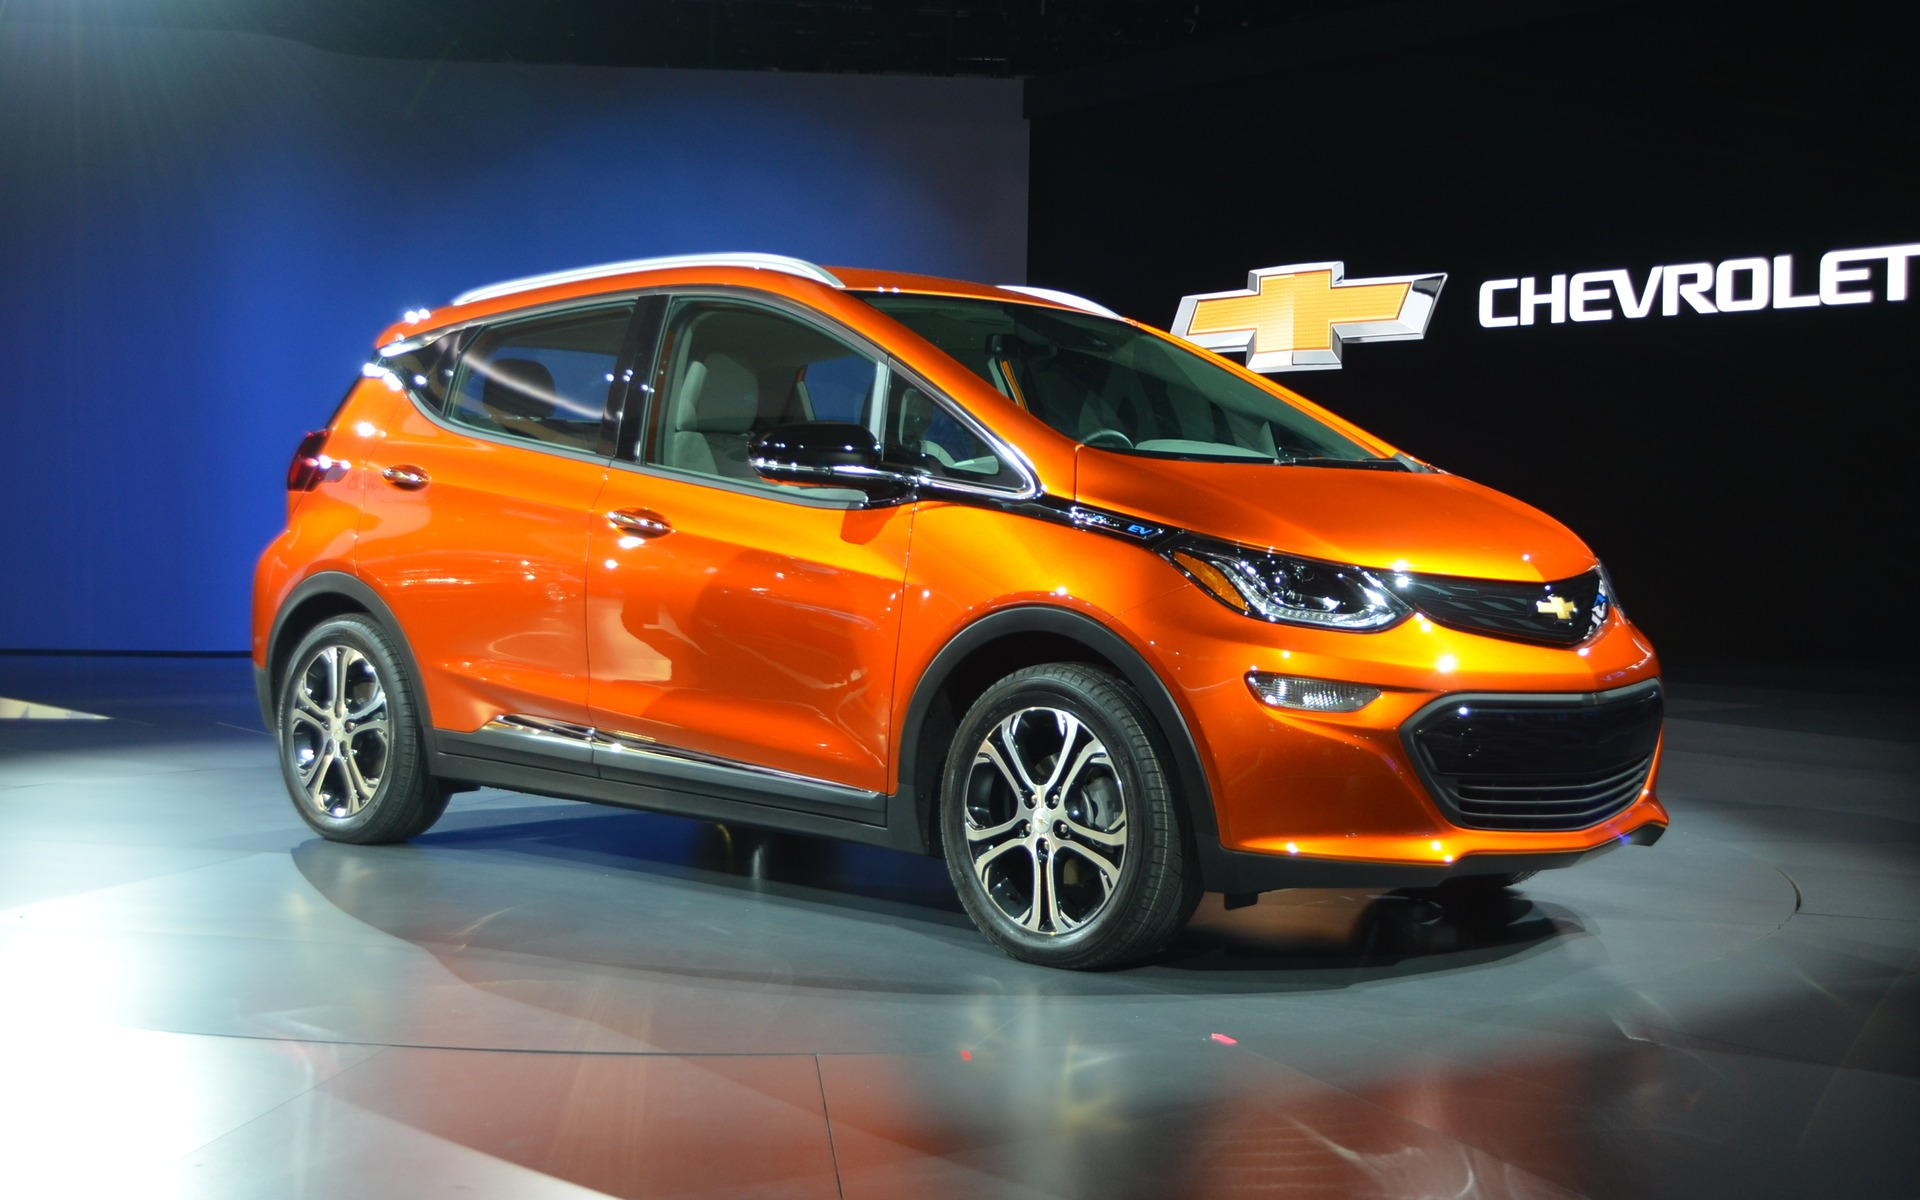 The Chevrolet Bolt EV unveiled at the 2016 Detroit Auto Show.